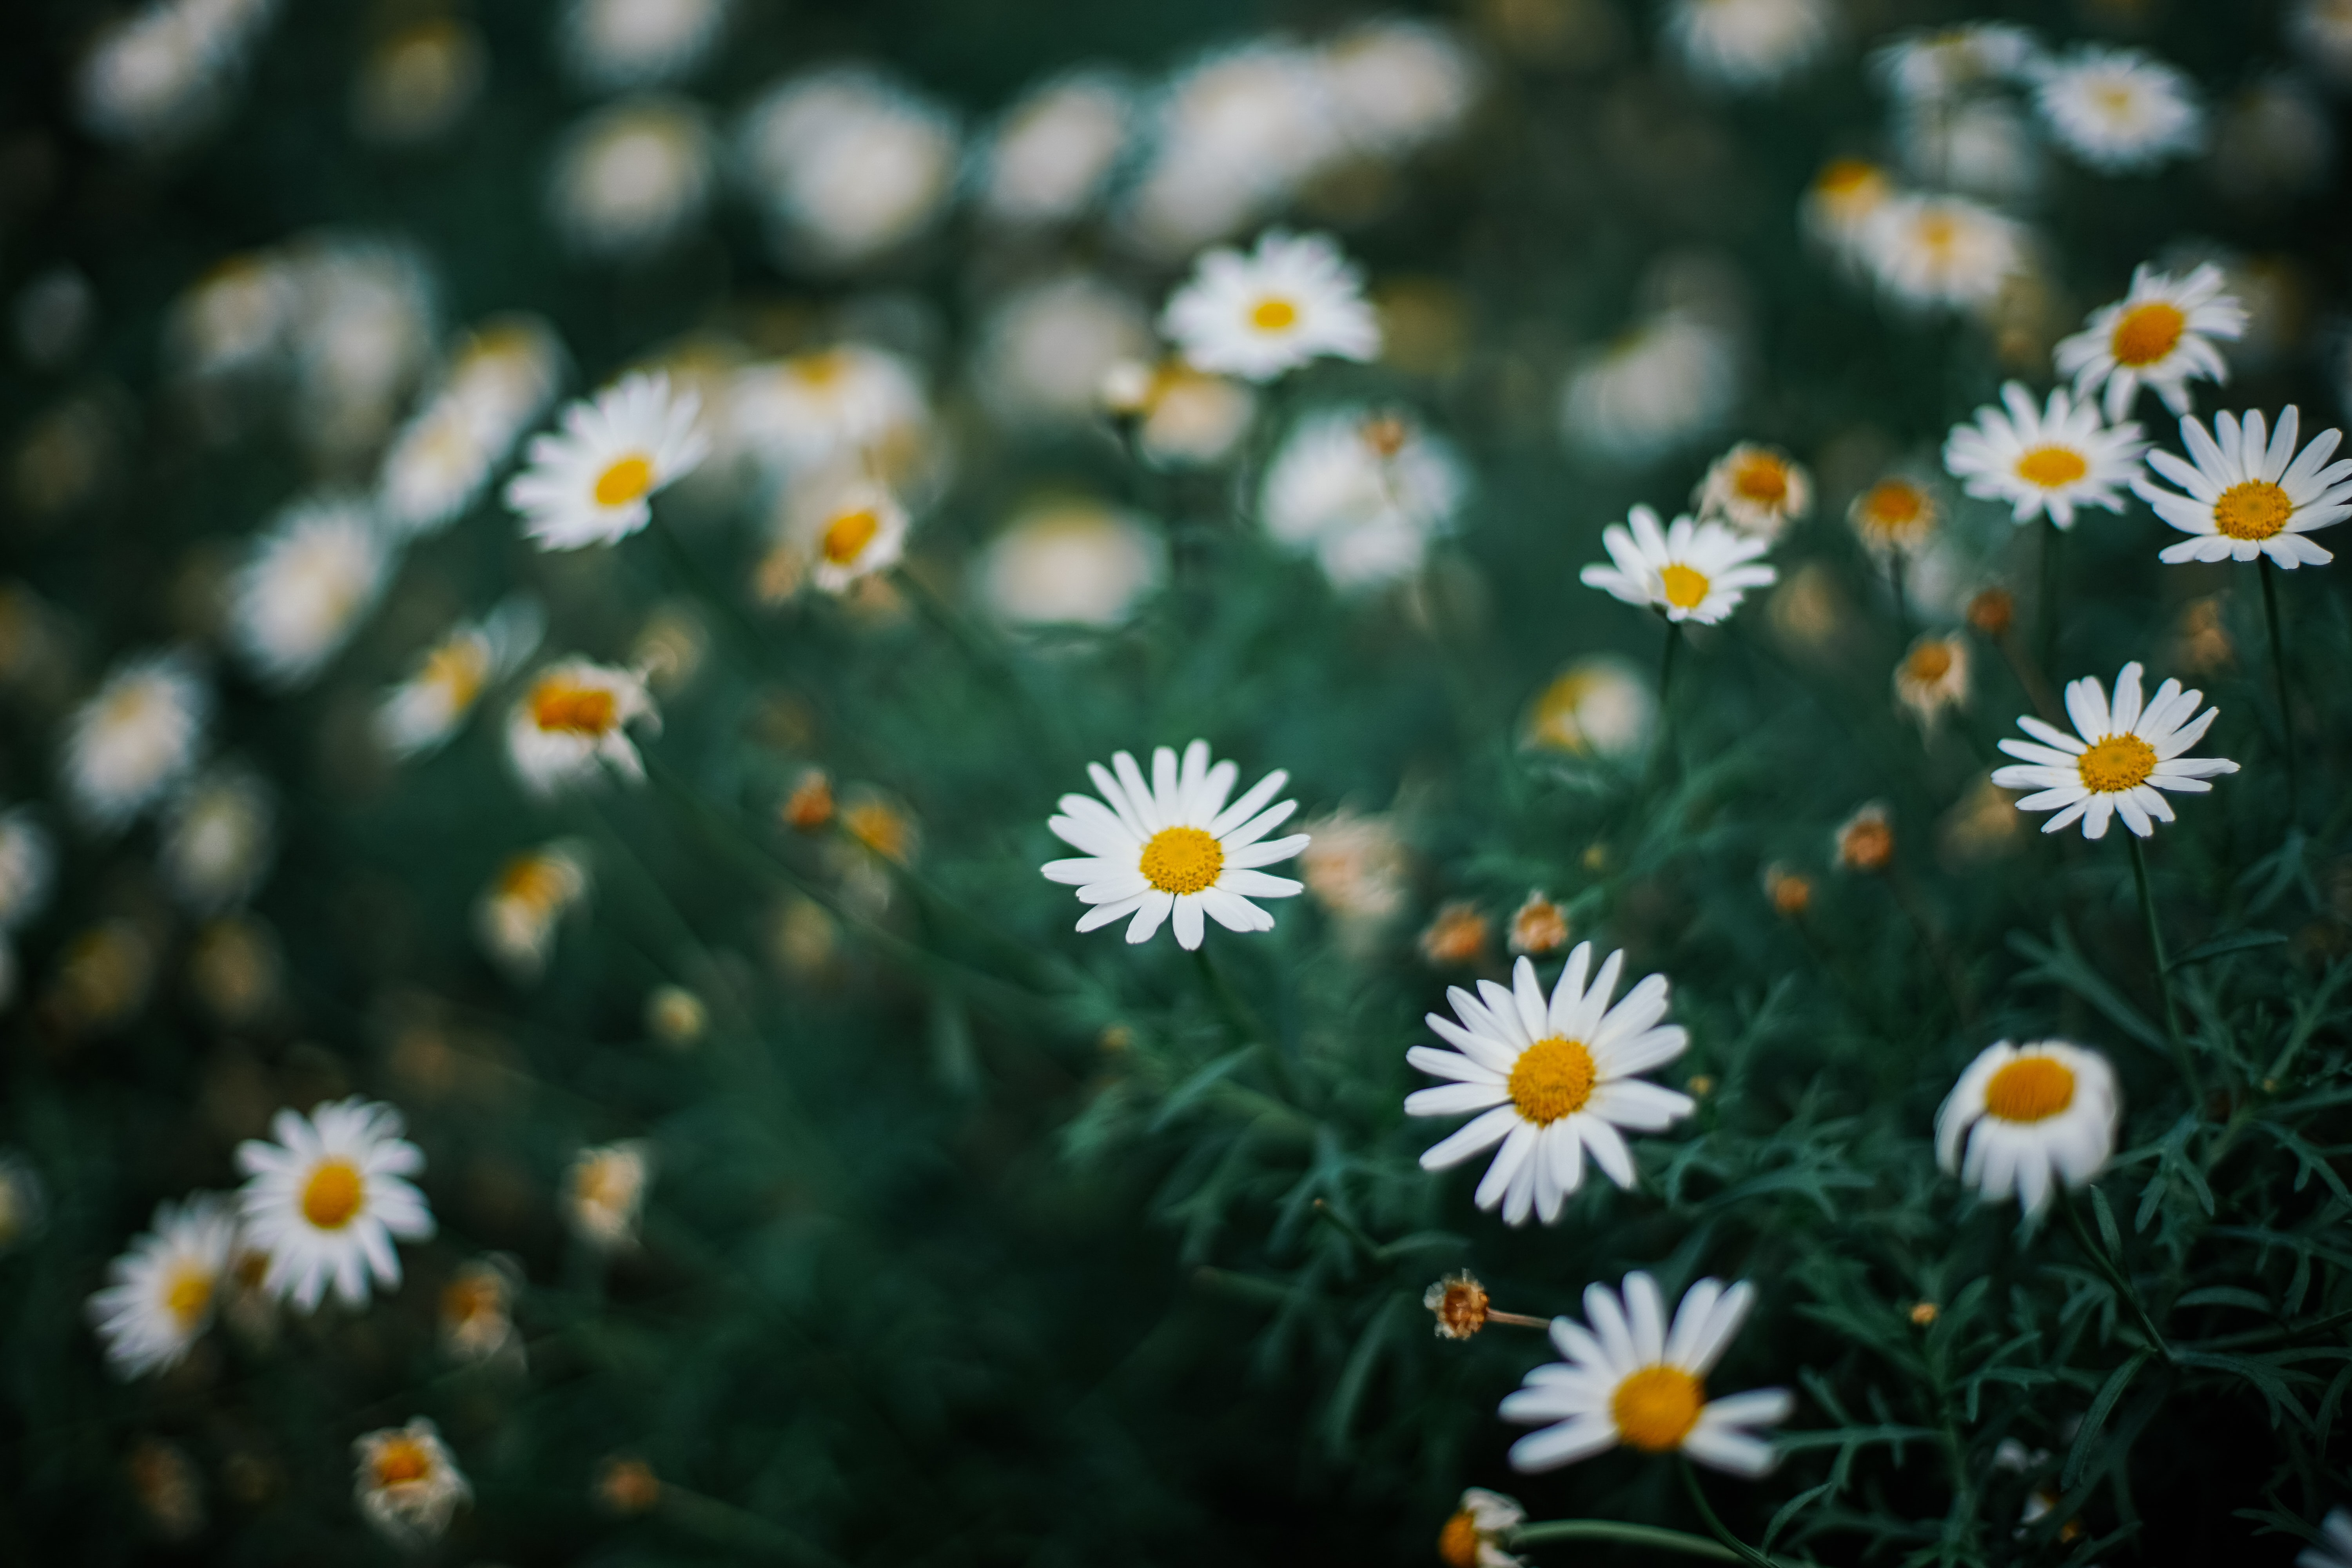 selective focus photography of common daisy flowers